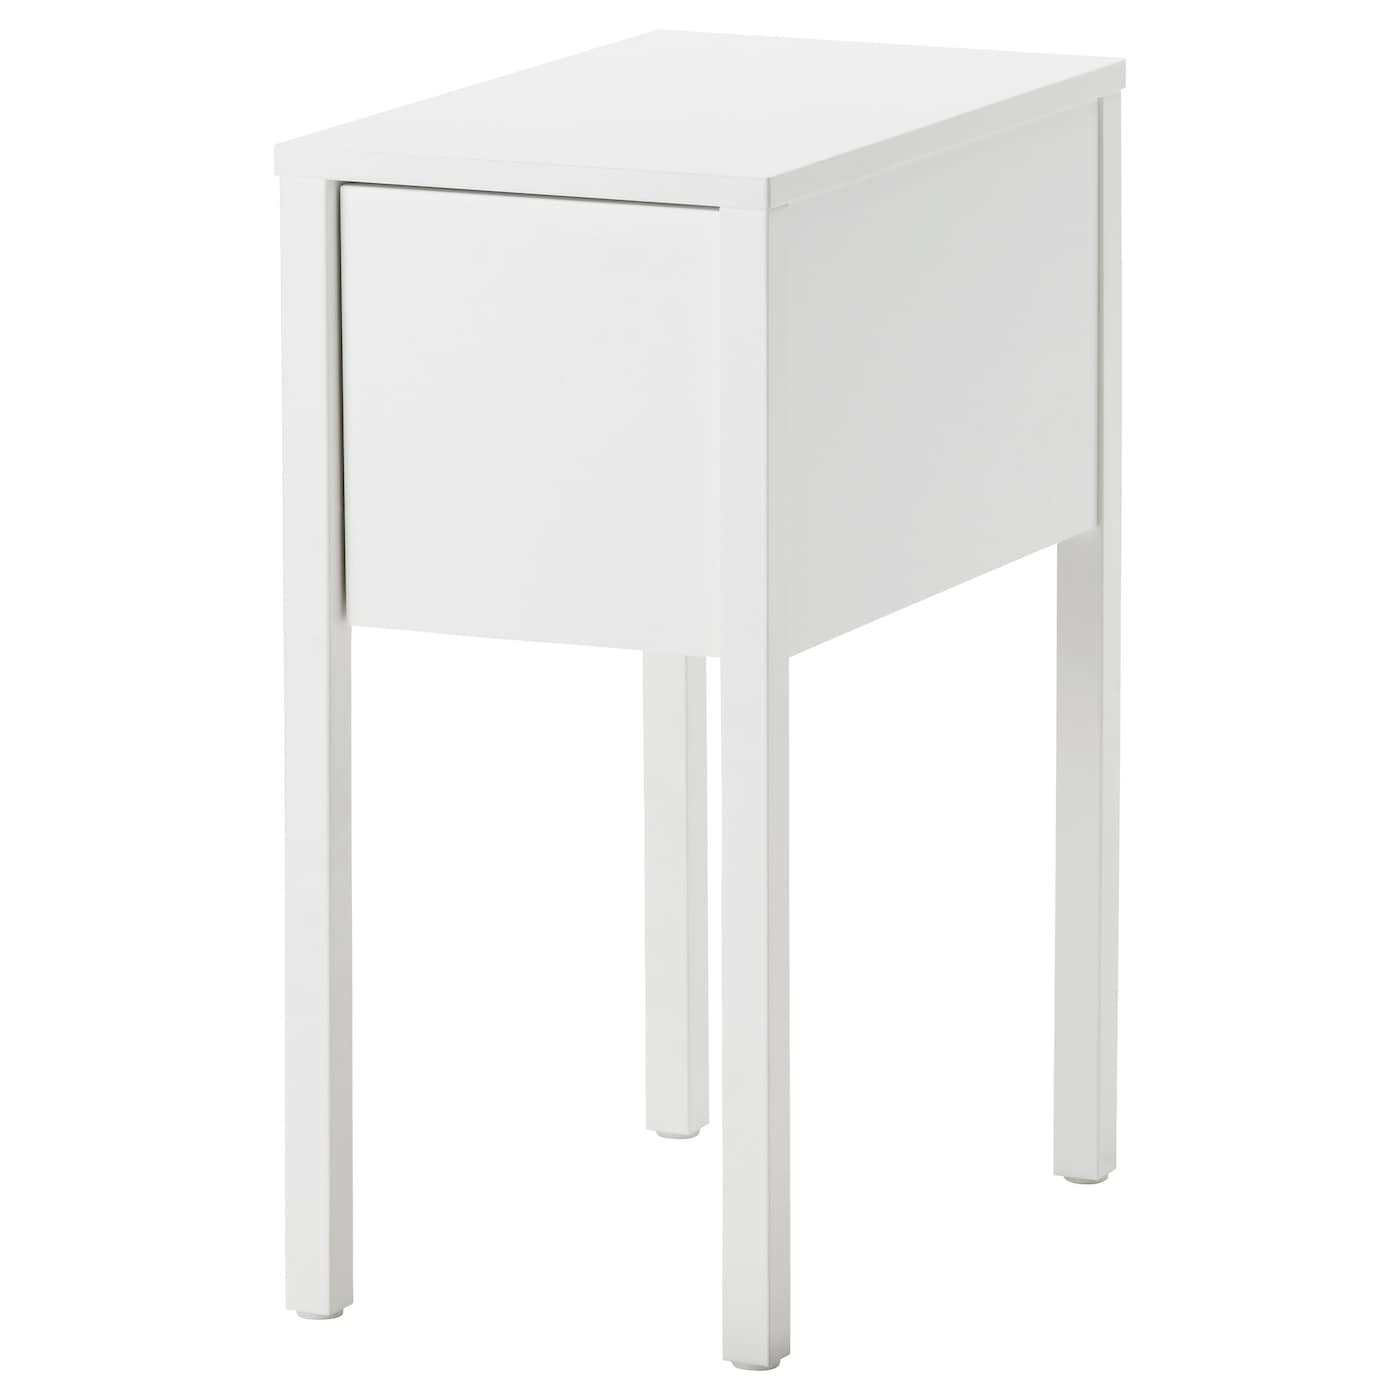 Nordli bedside table white 30x50 cm ikea - Table de nuit wenge ...